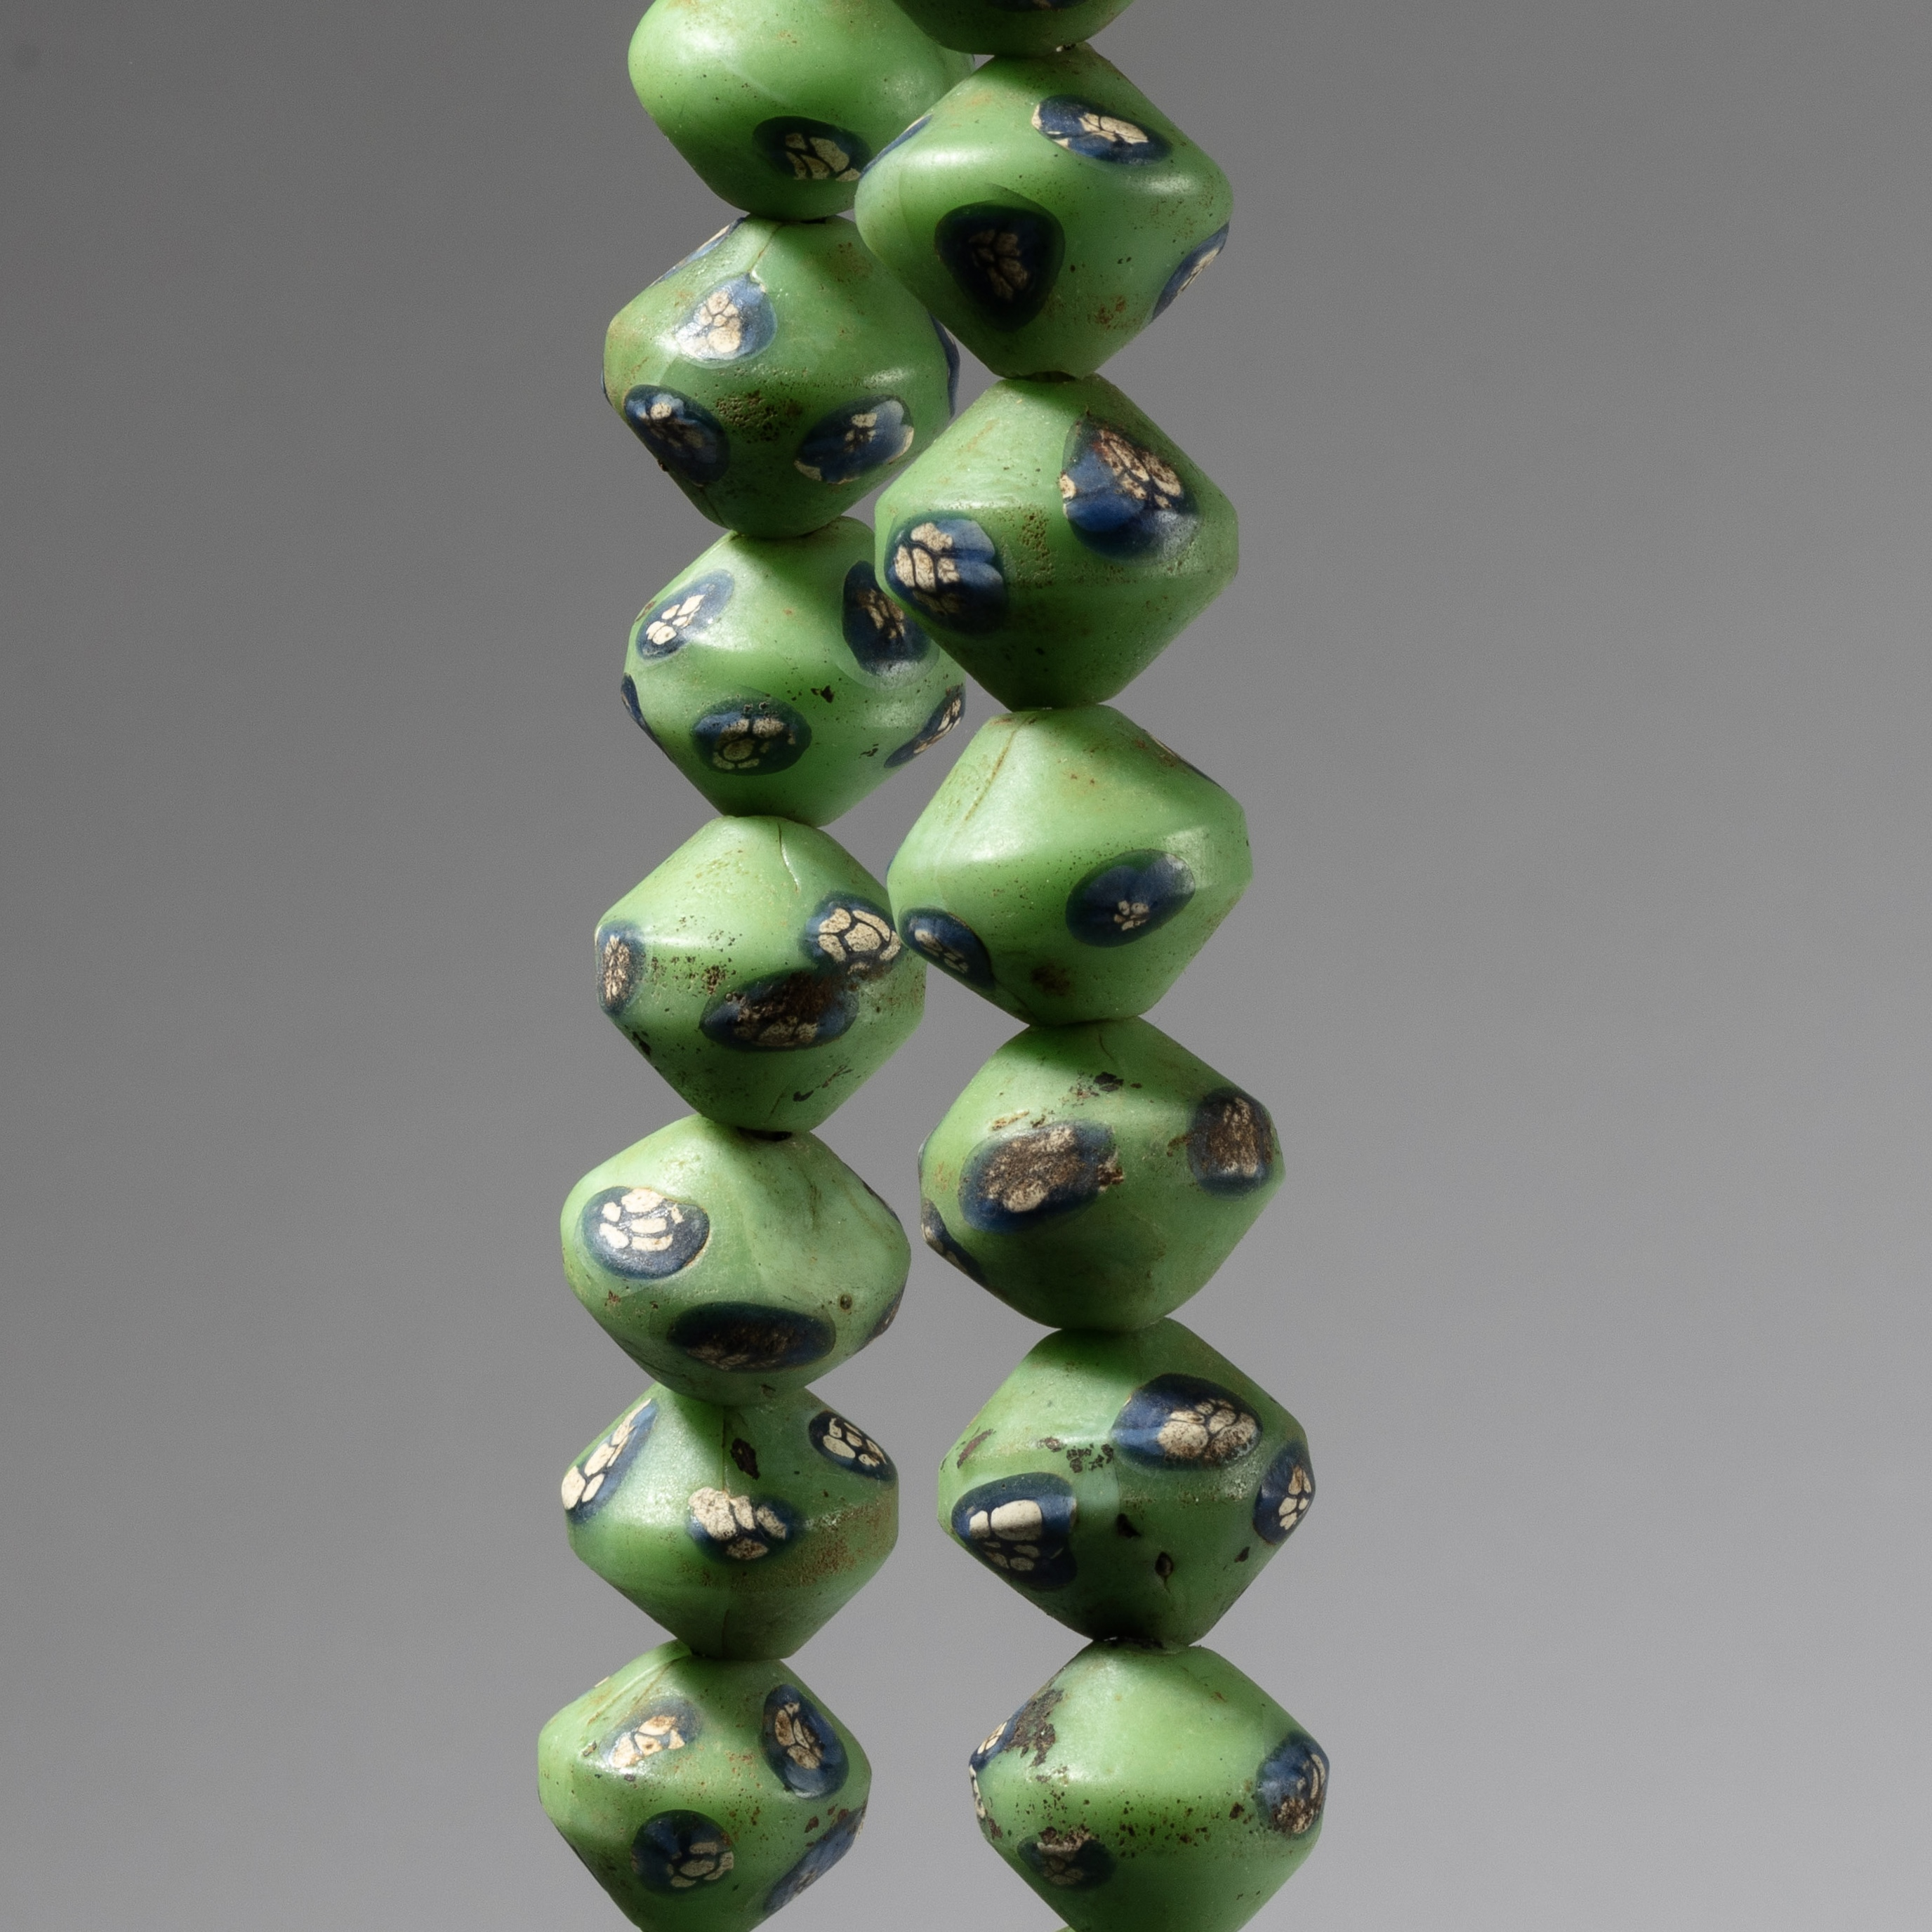 A LARGE BICONE NECKLACE OF JAVA GLASS BEADS, INDONESIA ( No 4299)